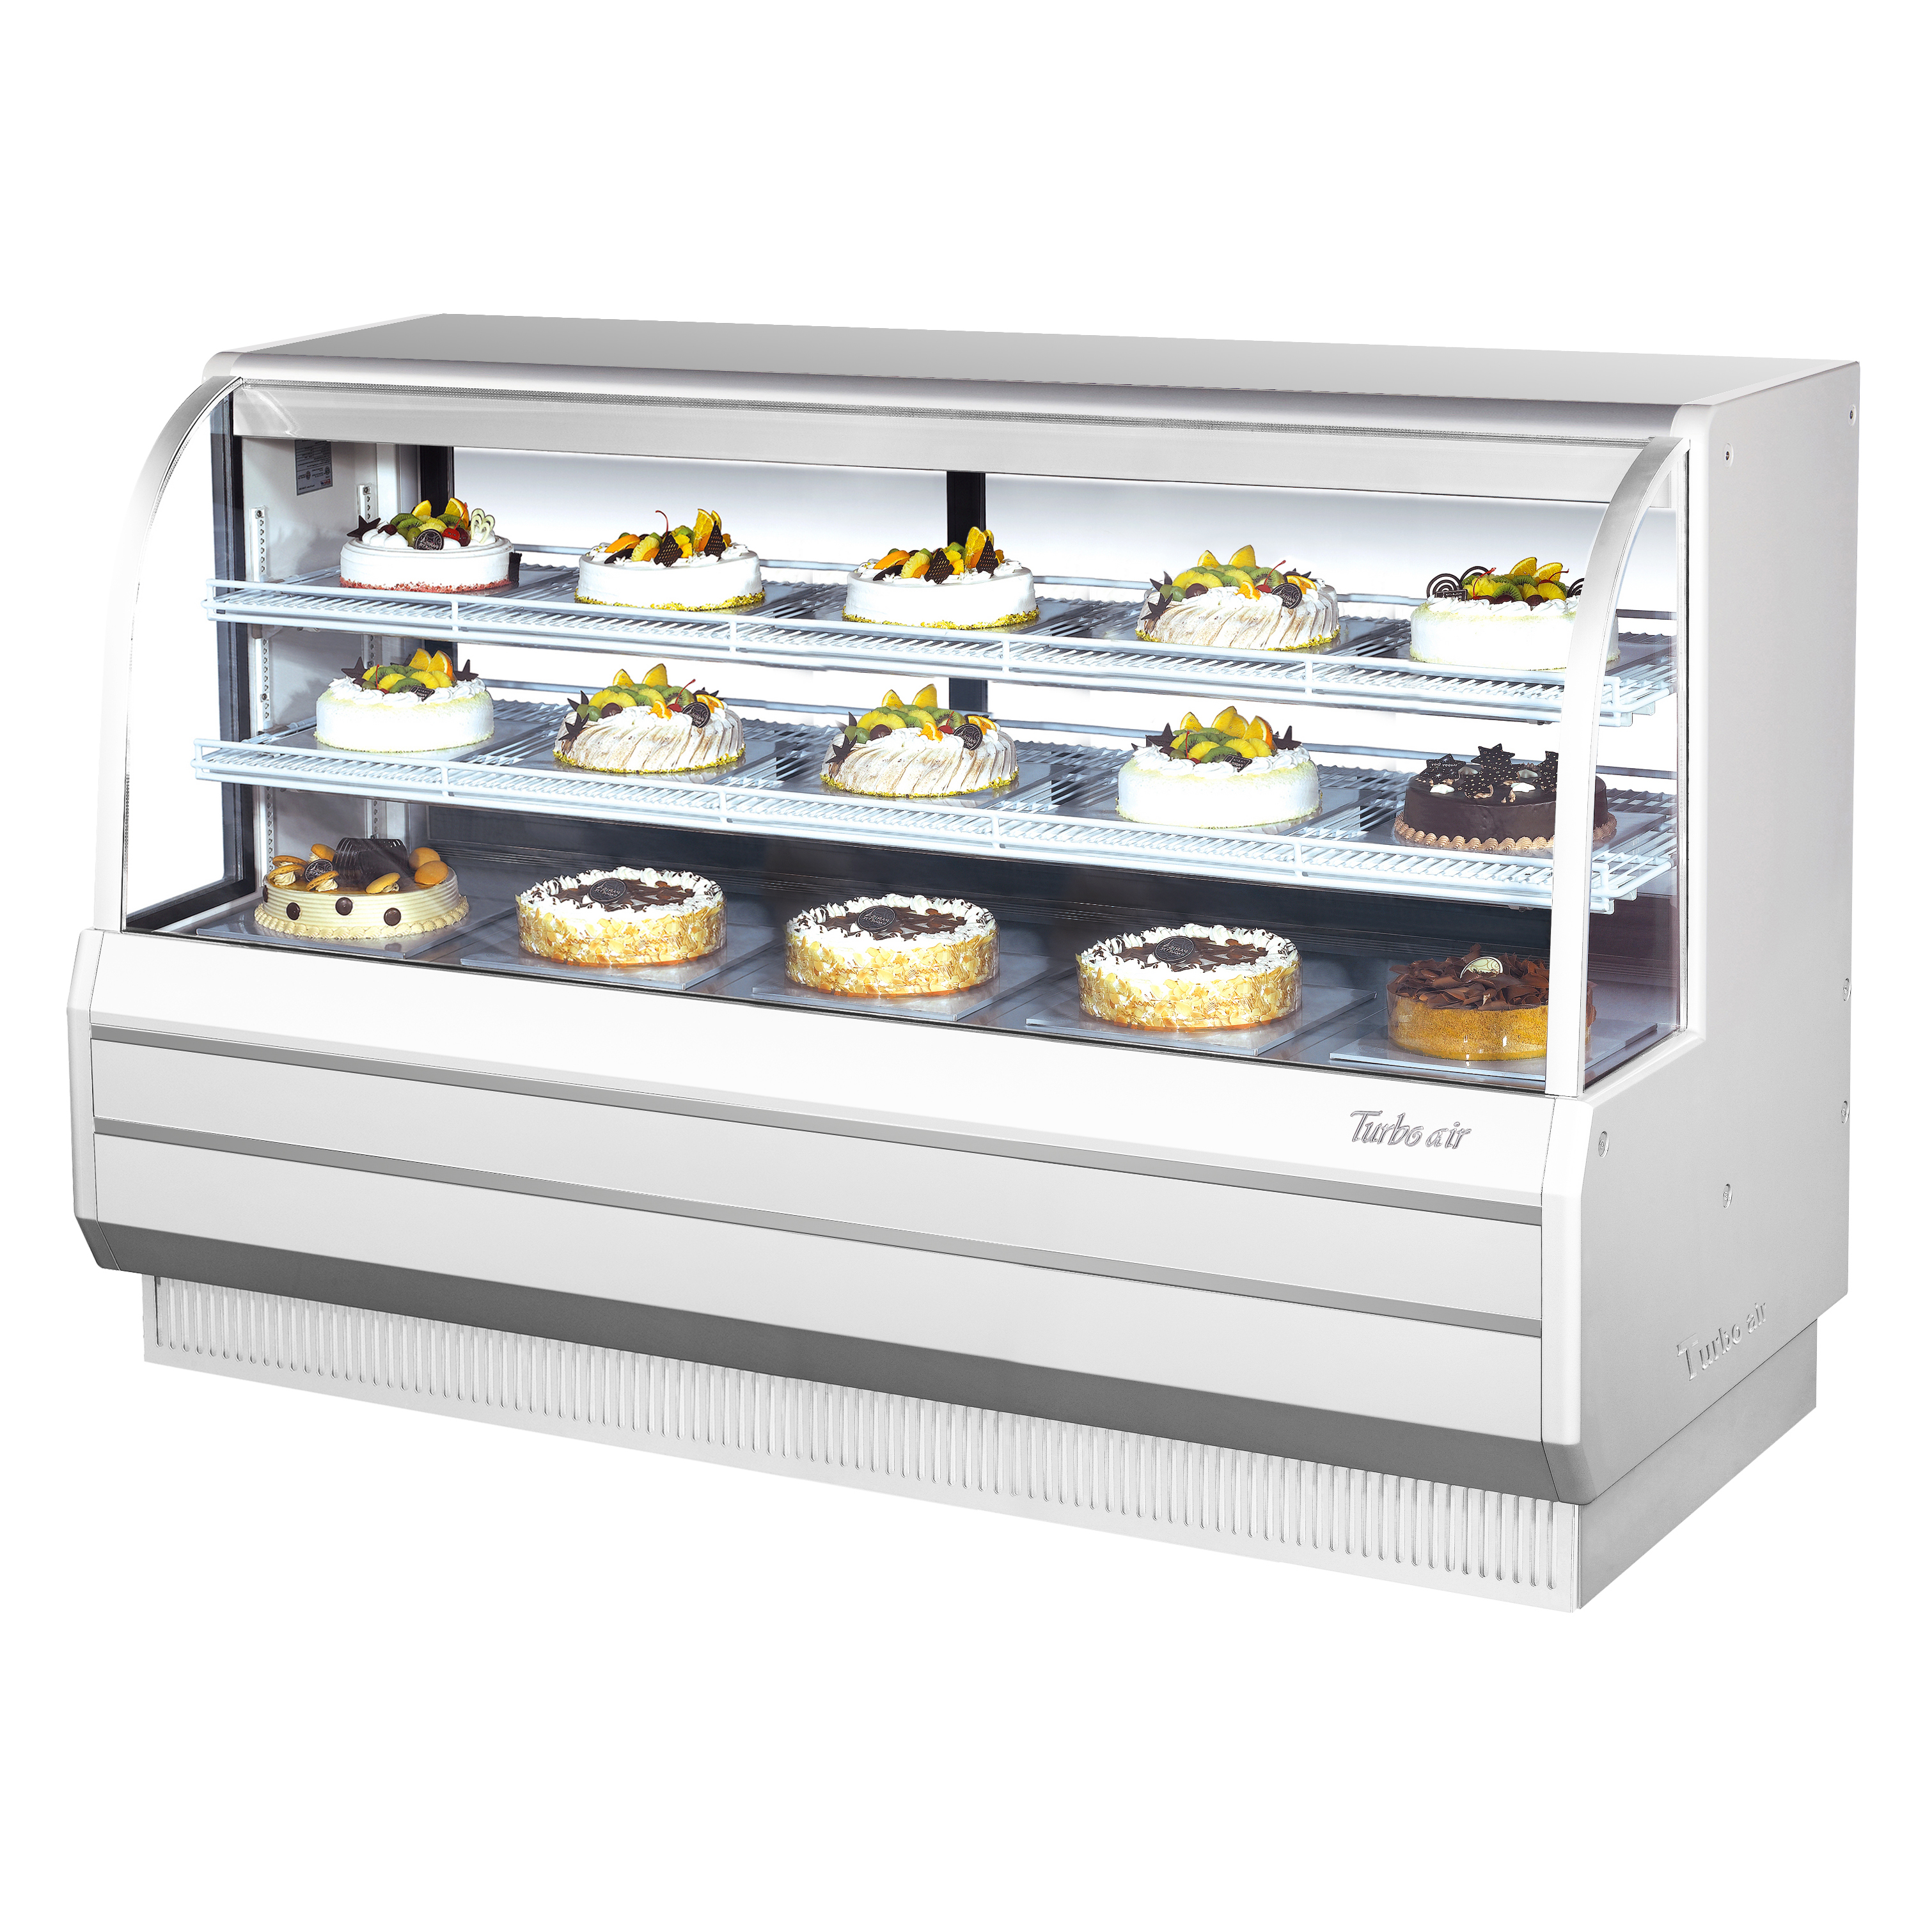 Turbo Air TCGB-72-W(B)-N display case, refrigerated bakery